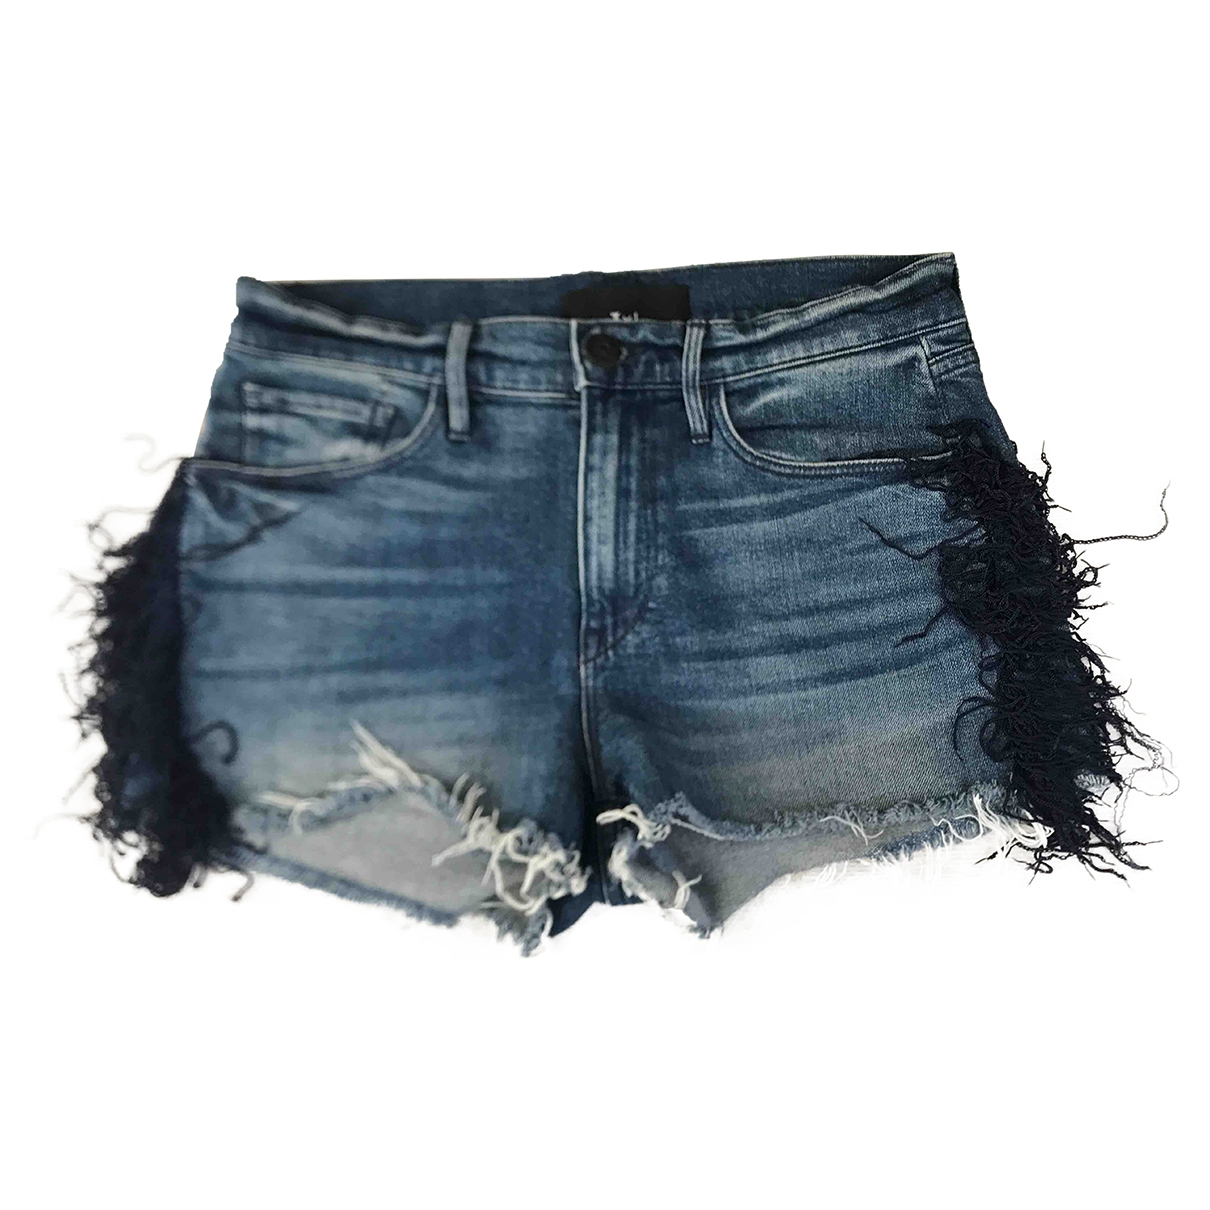 3x1 \N Blue Denim - Jeans Shorts for Women 1 0-5